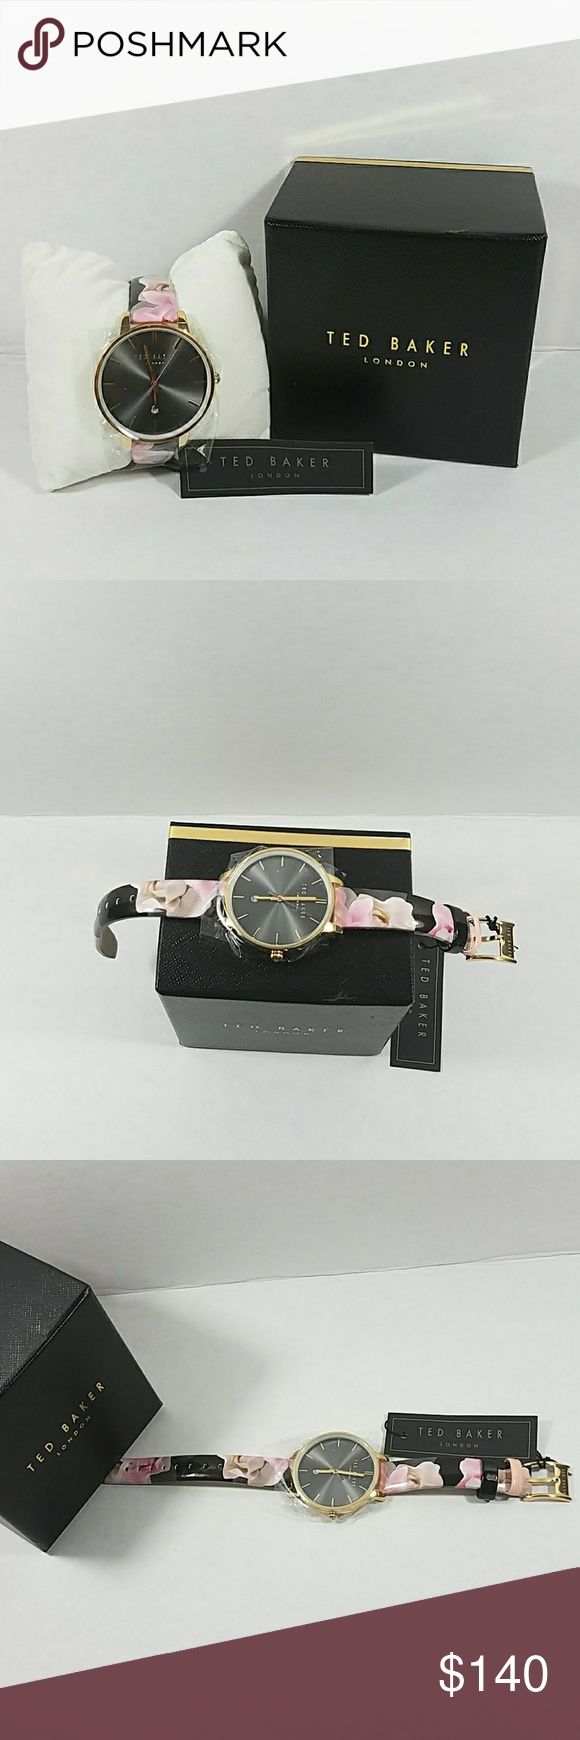 Ted Baker London WATCH Ted Baker Black / Florar Print Leather Analog Quartz Women's Watch Ted Baker London Accessories Watches